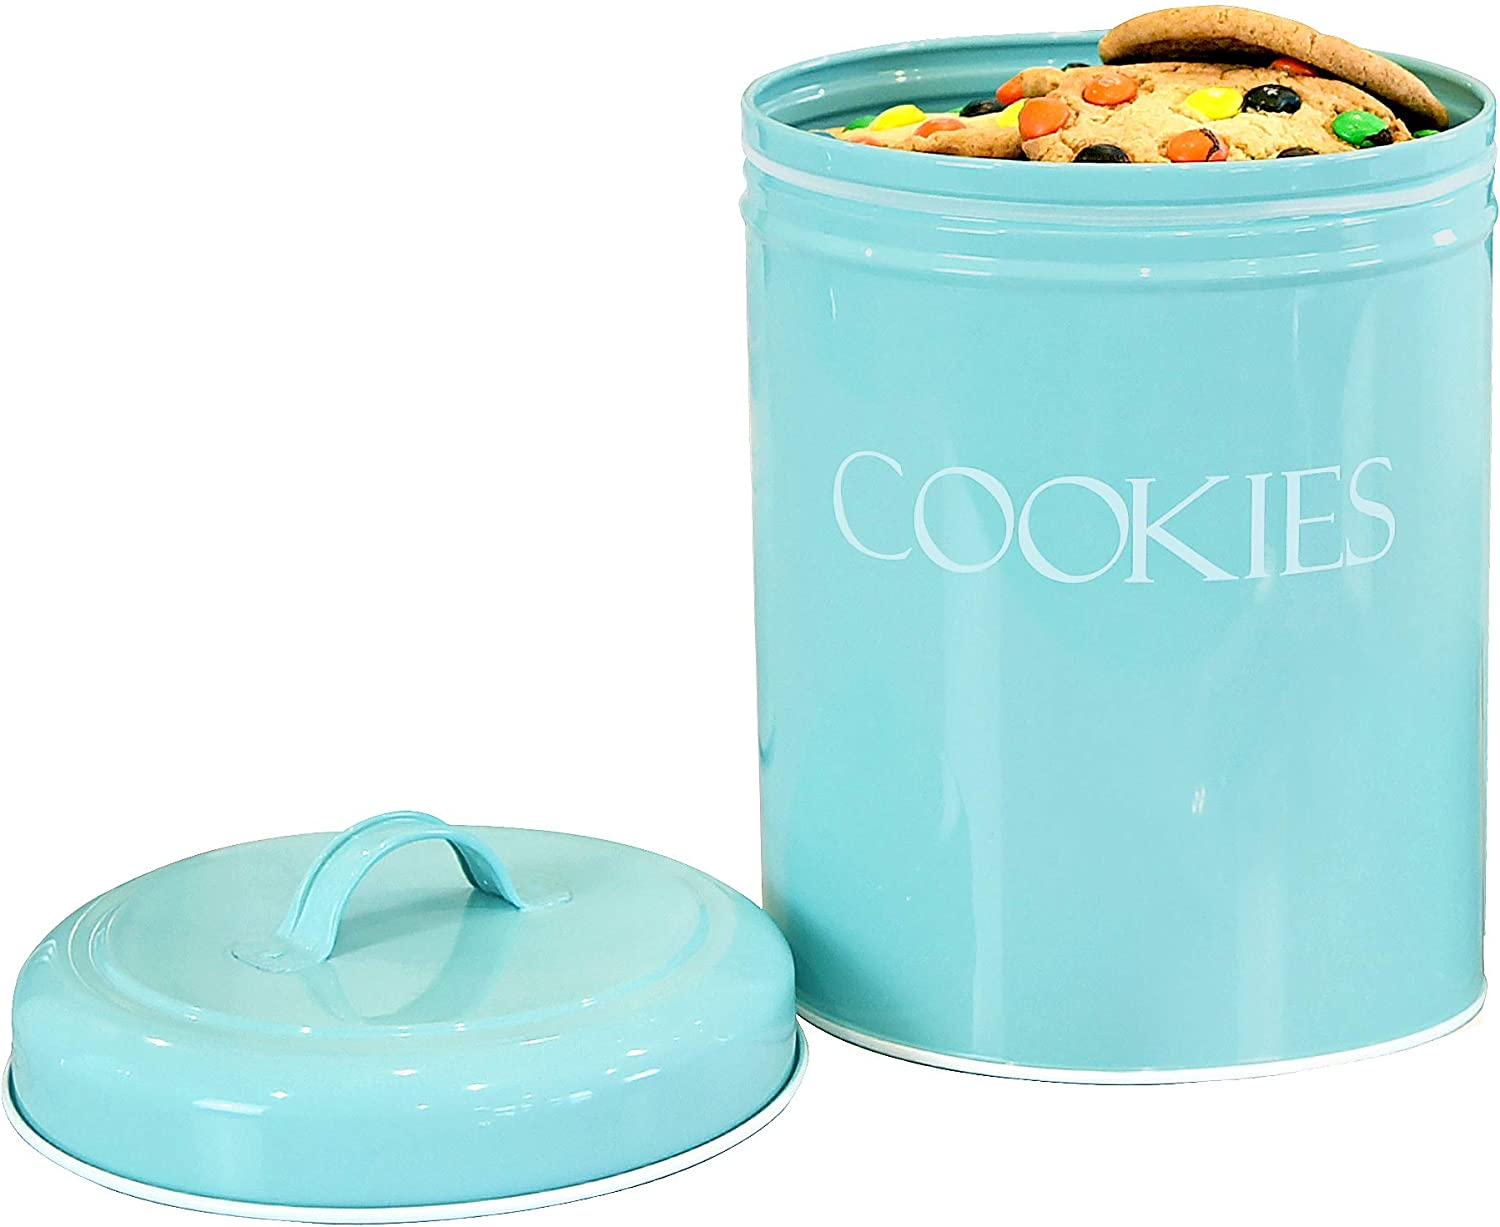 Amazon Com Outshine Mint Vintage Farmhouse Cookie Jar Airtight Food Storage Container With Lid For Cookies Biscuits Baked Treats Snacks Gift For Housewarming Birthday Wedding Christmas Kitchen Dining